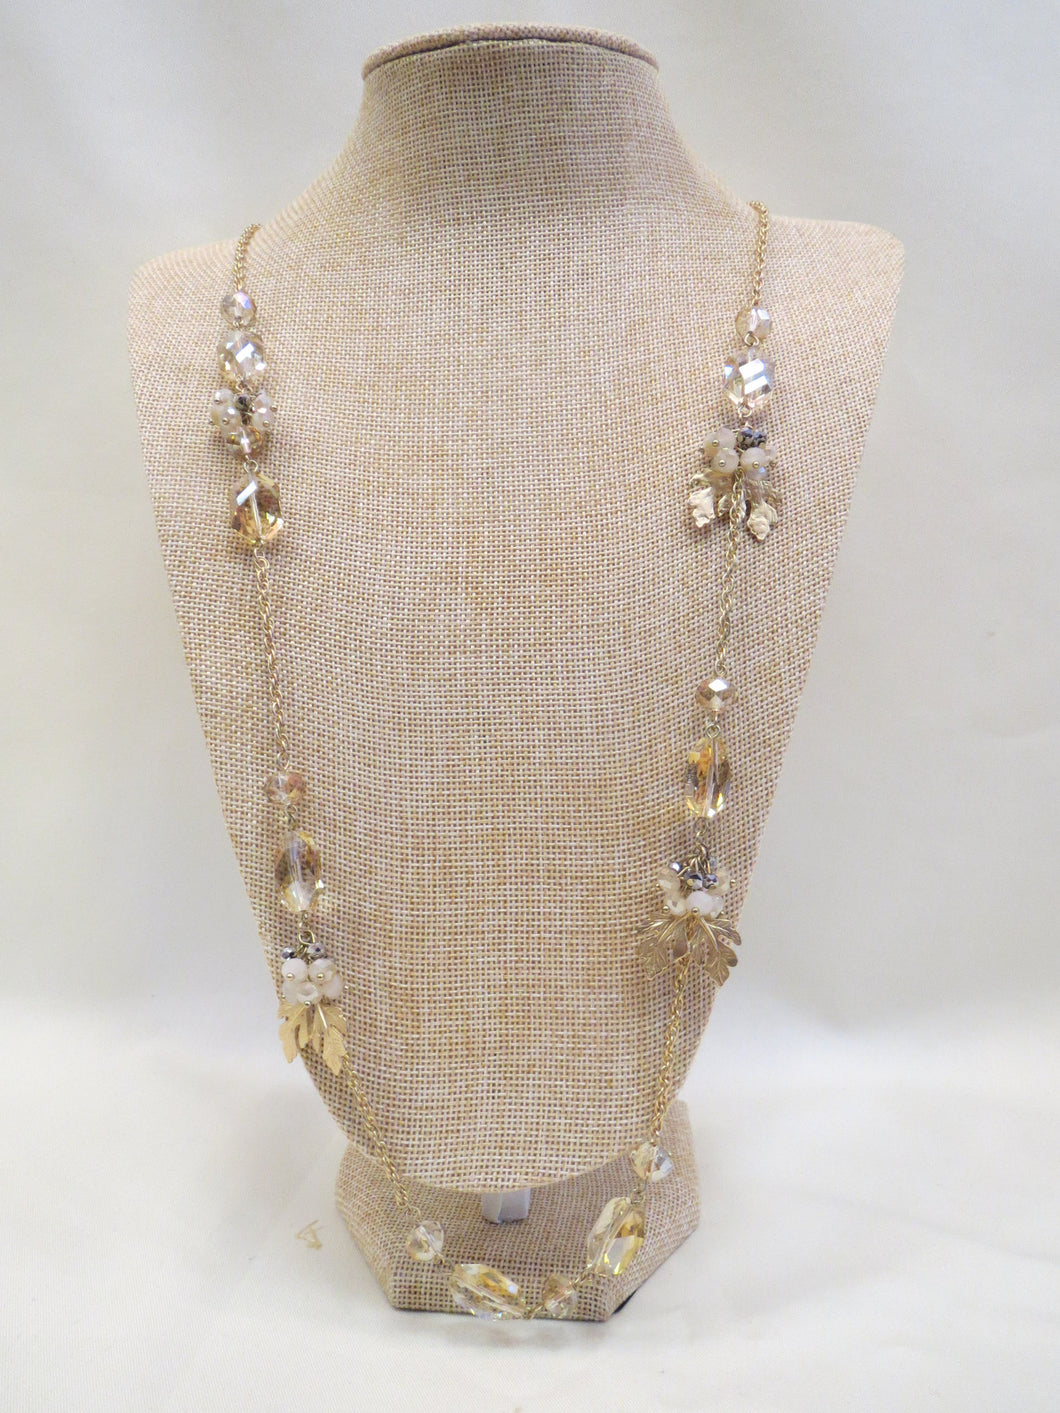 ADO | Gold Leaf & Beads Necklace Long - All Decd Out